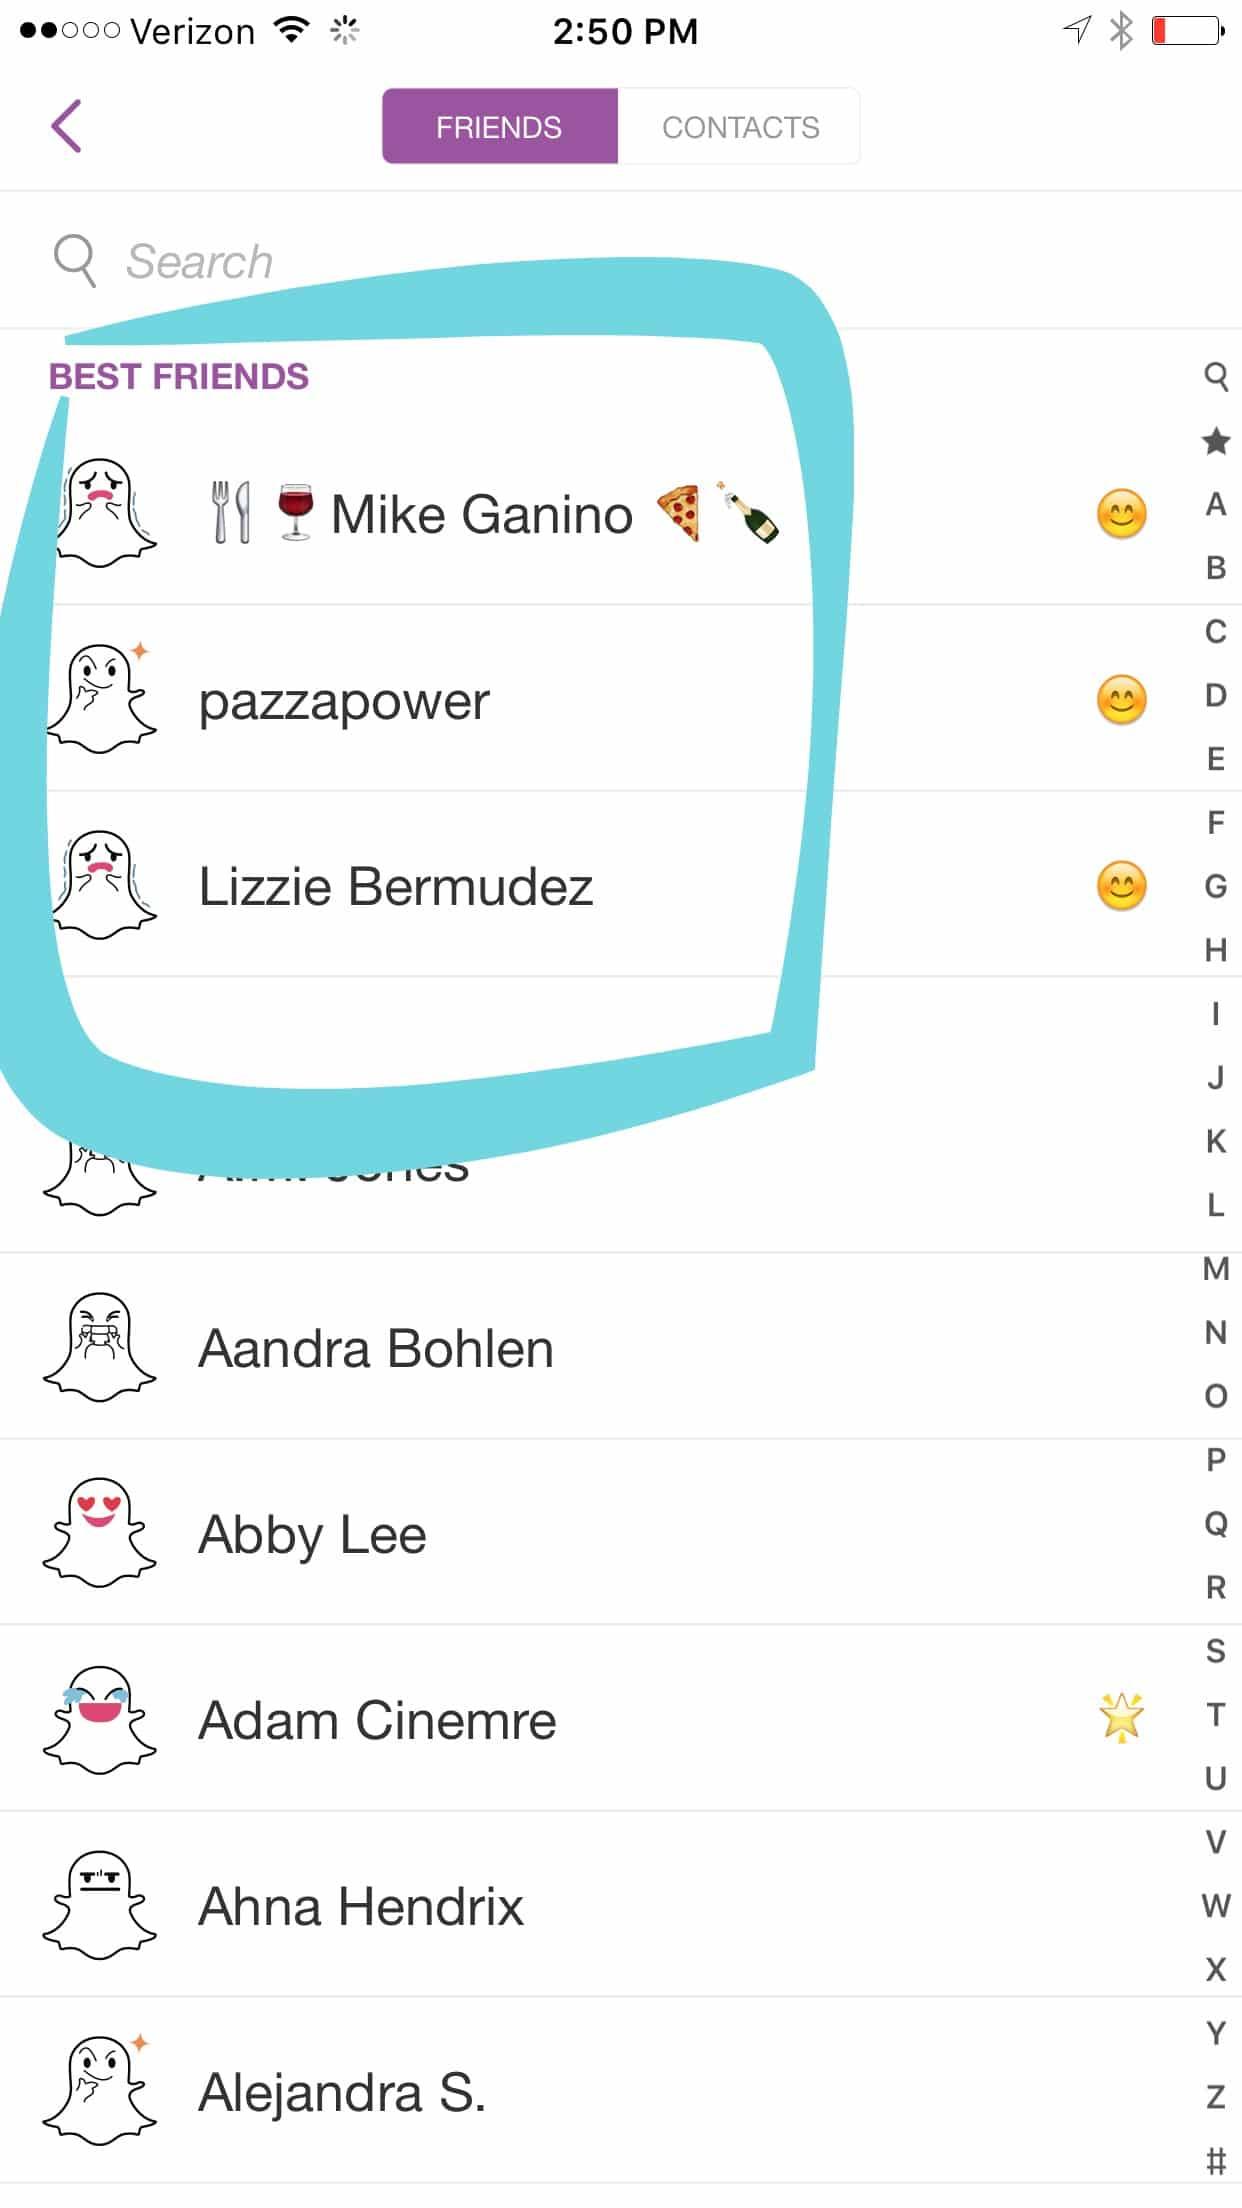 Your Best Friends in Snapchat are the people you interact with most often.